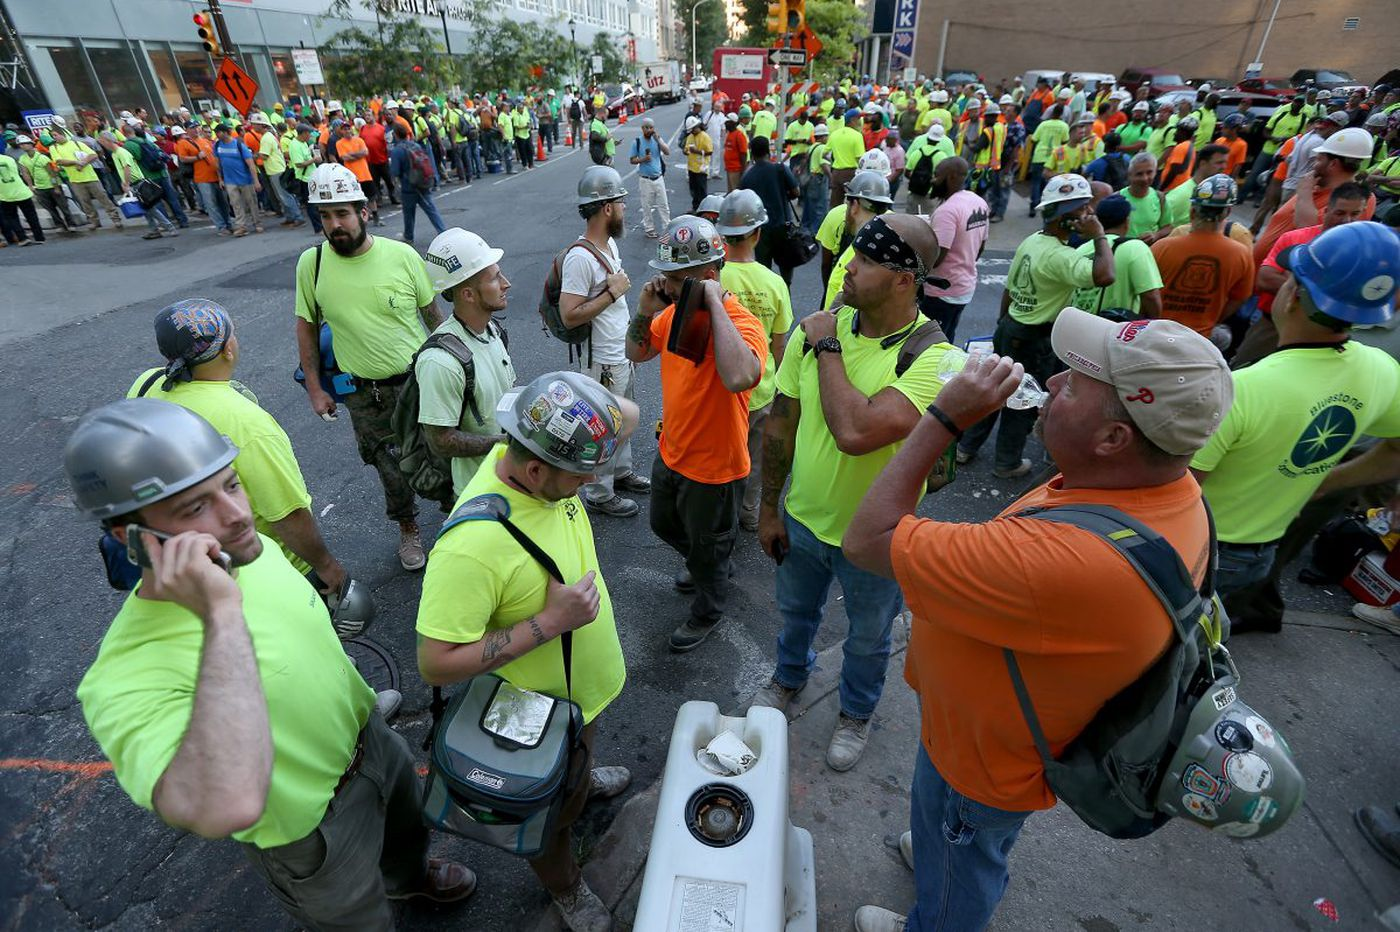 Work halted at Comcast tower as crane operators protest